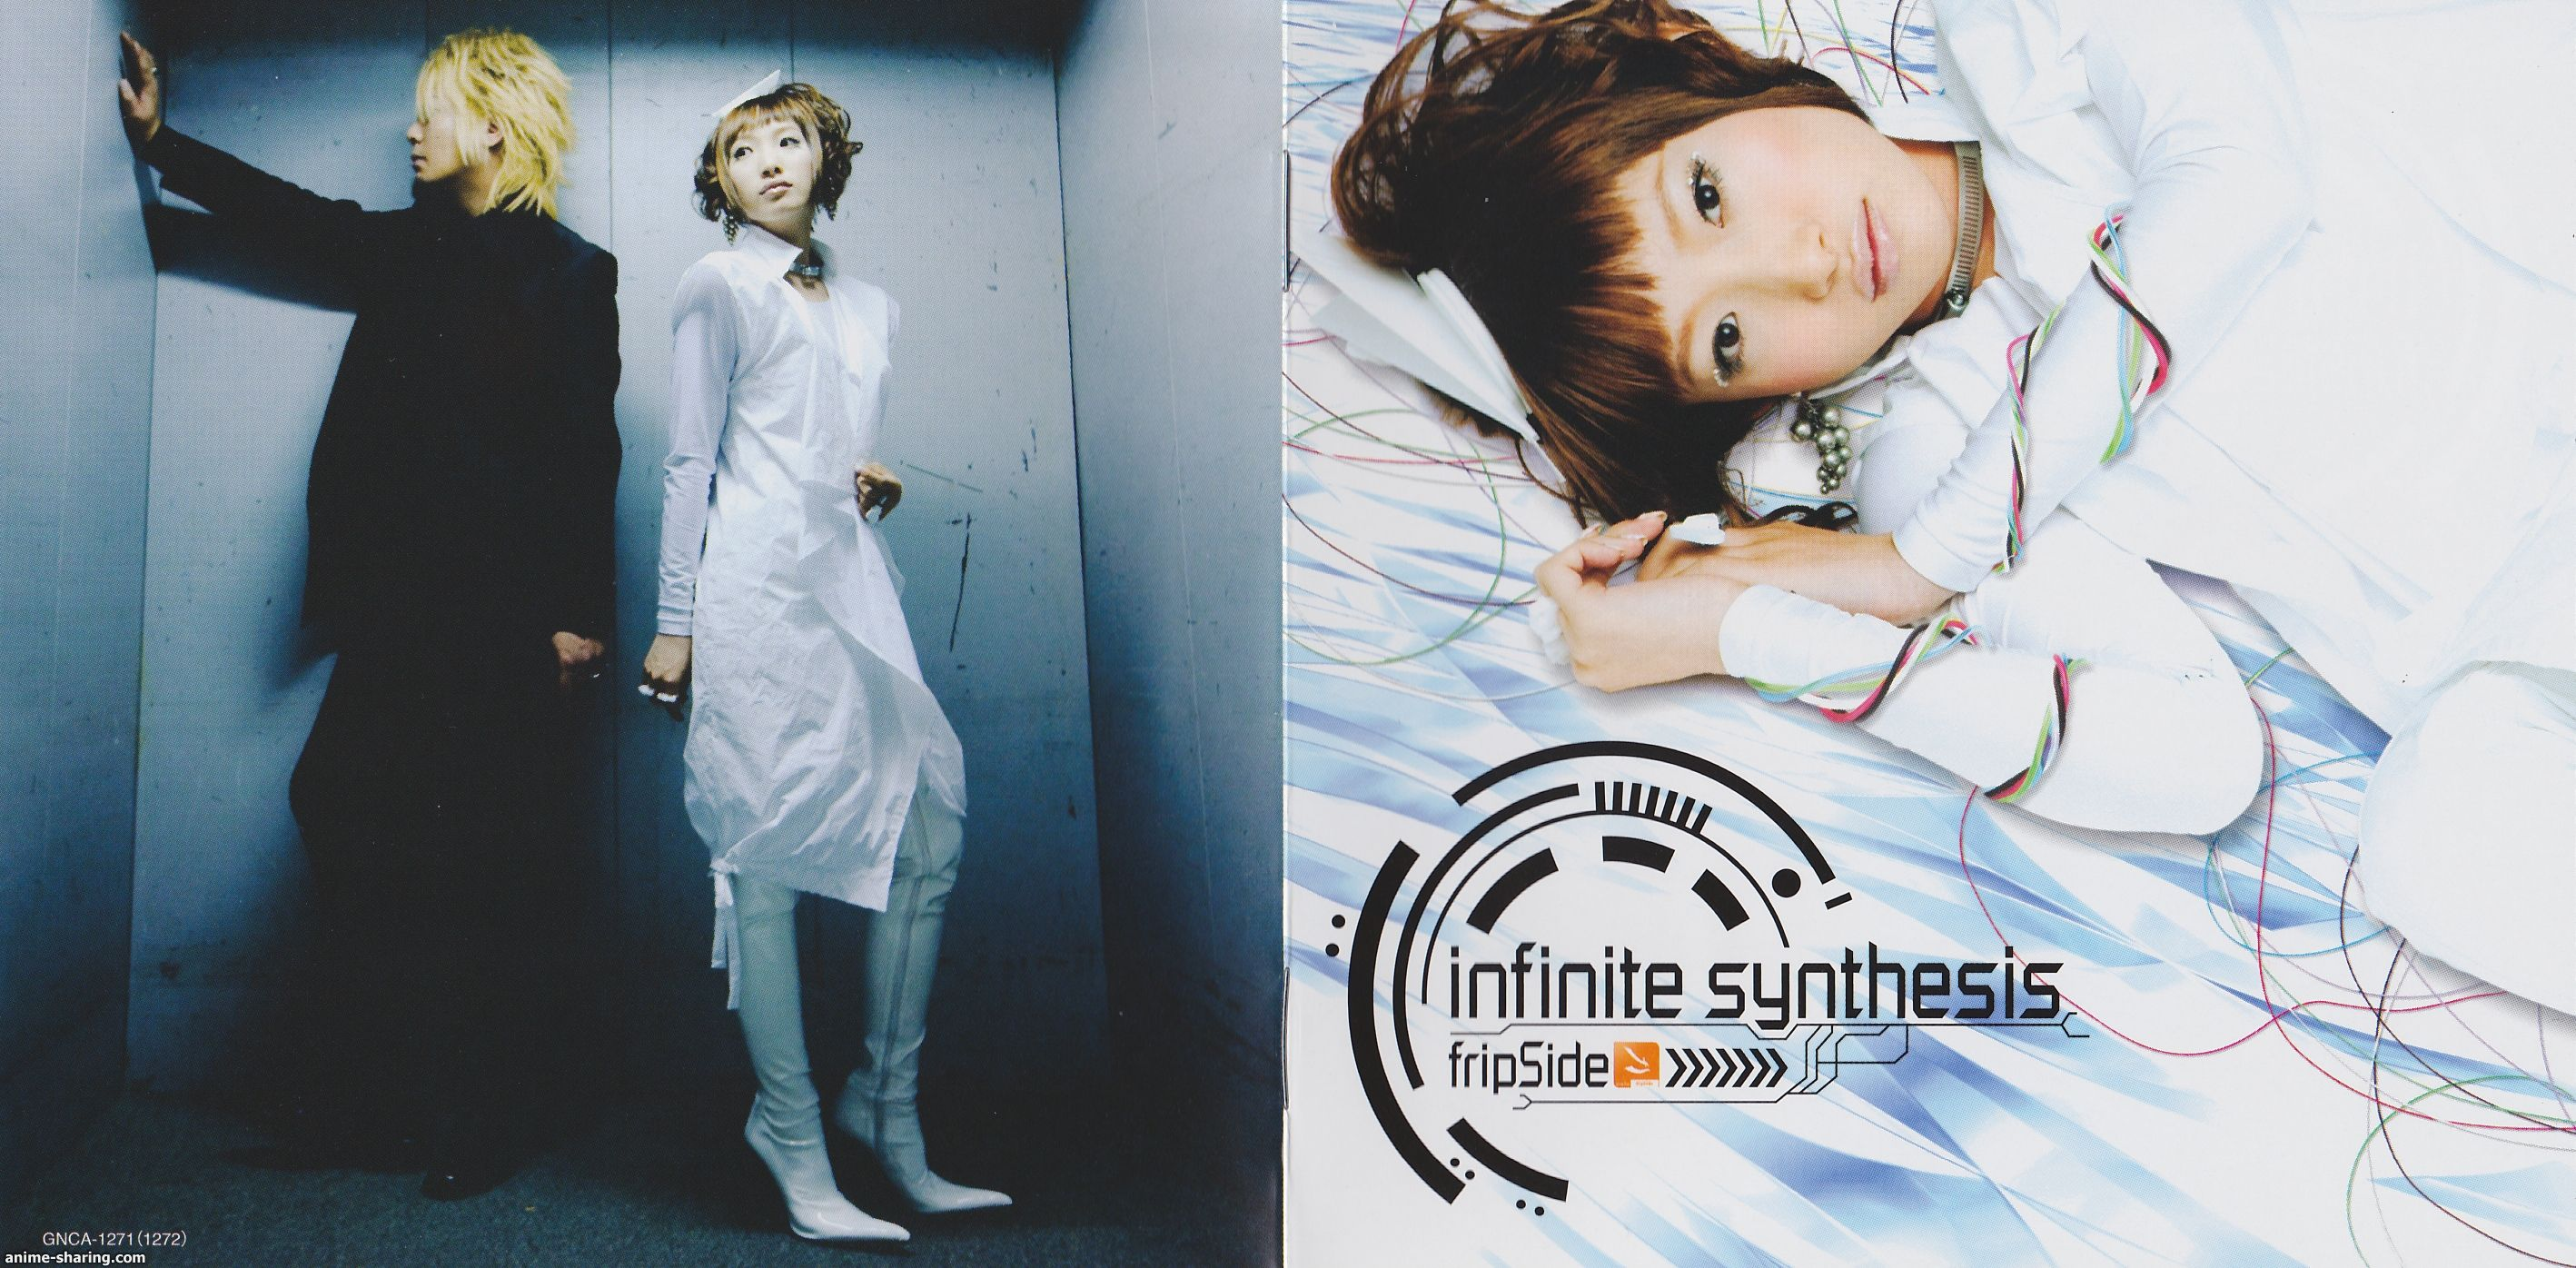 fripSide - Re:product mixes ver.I.S.